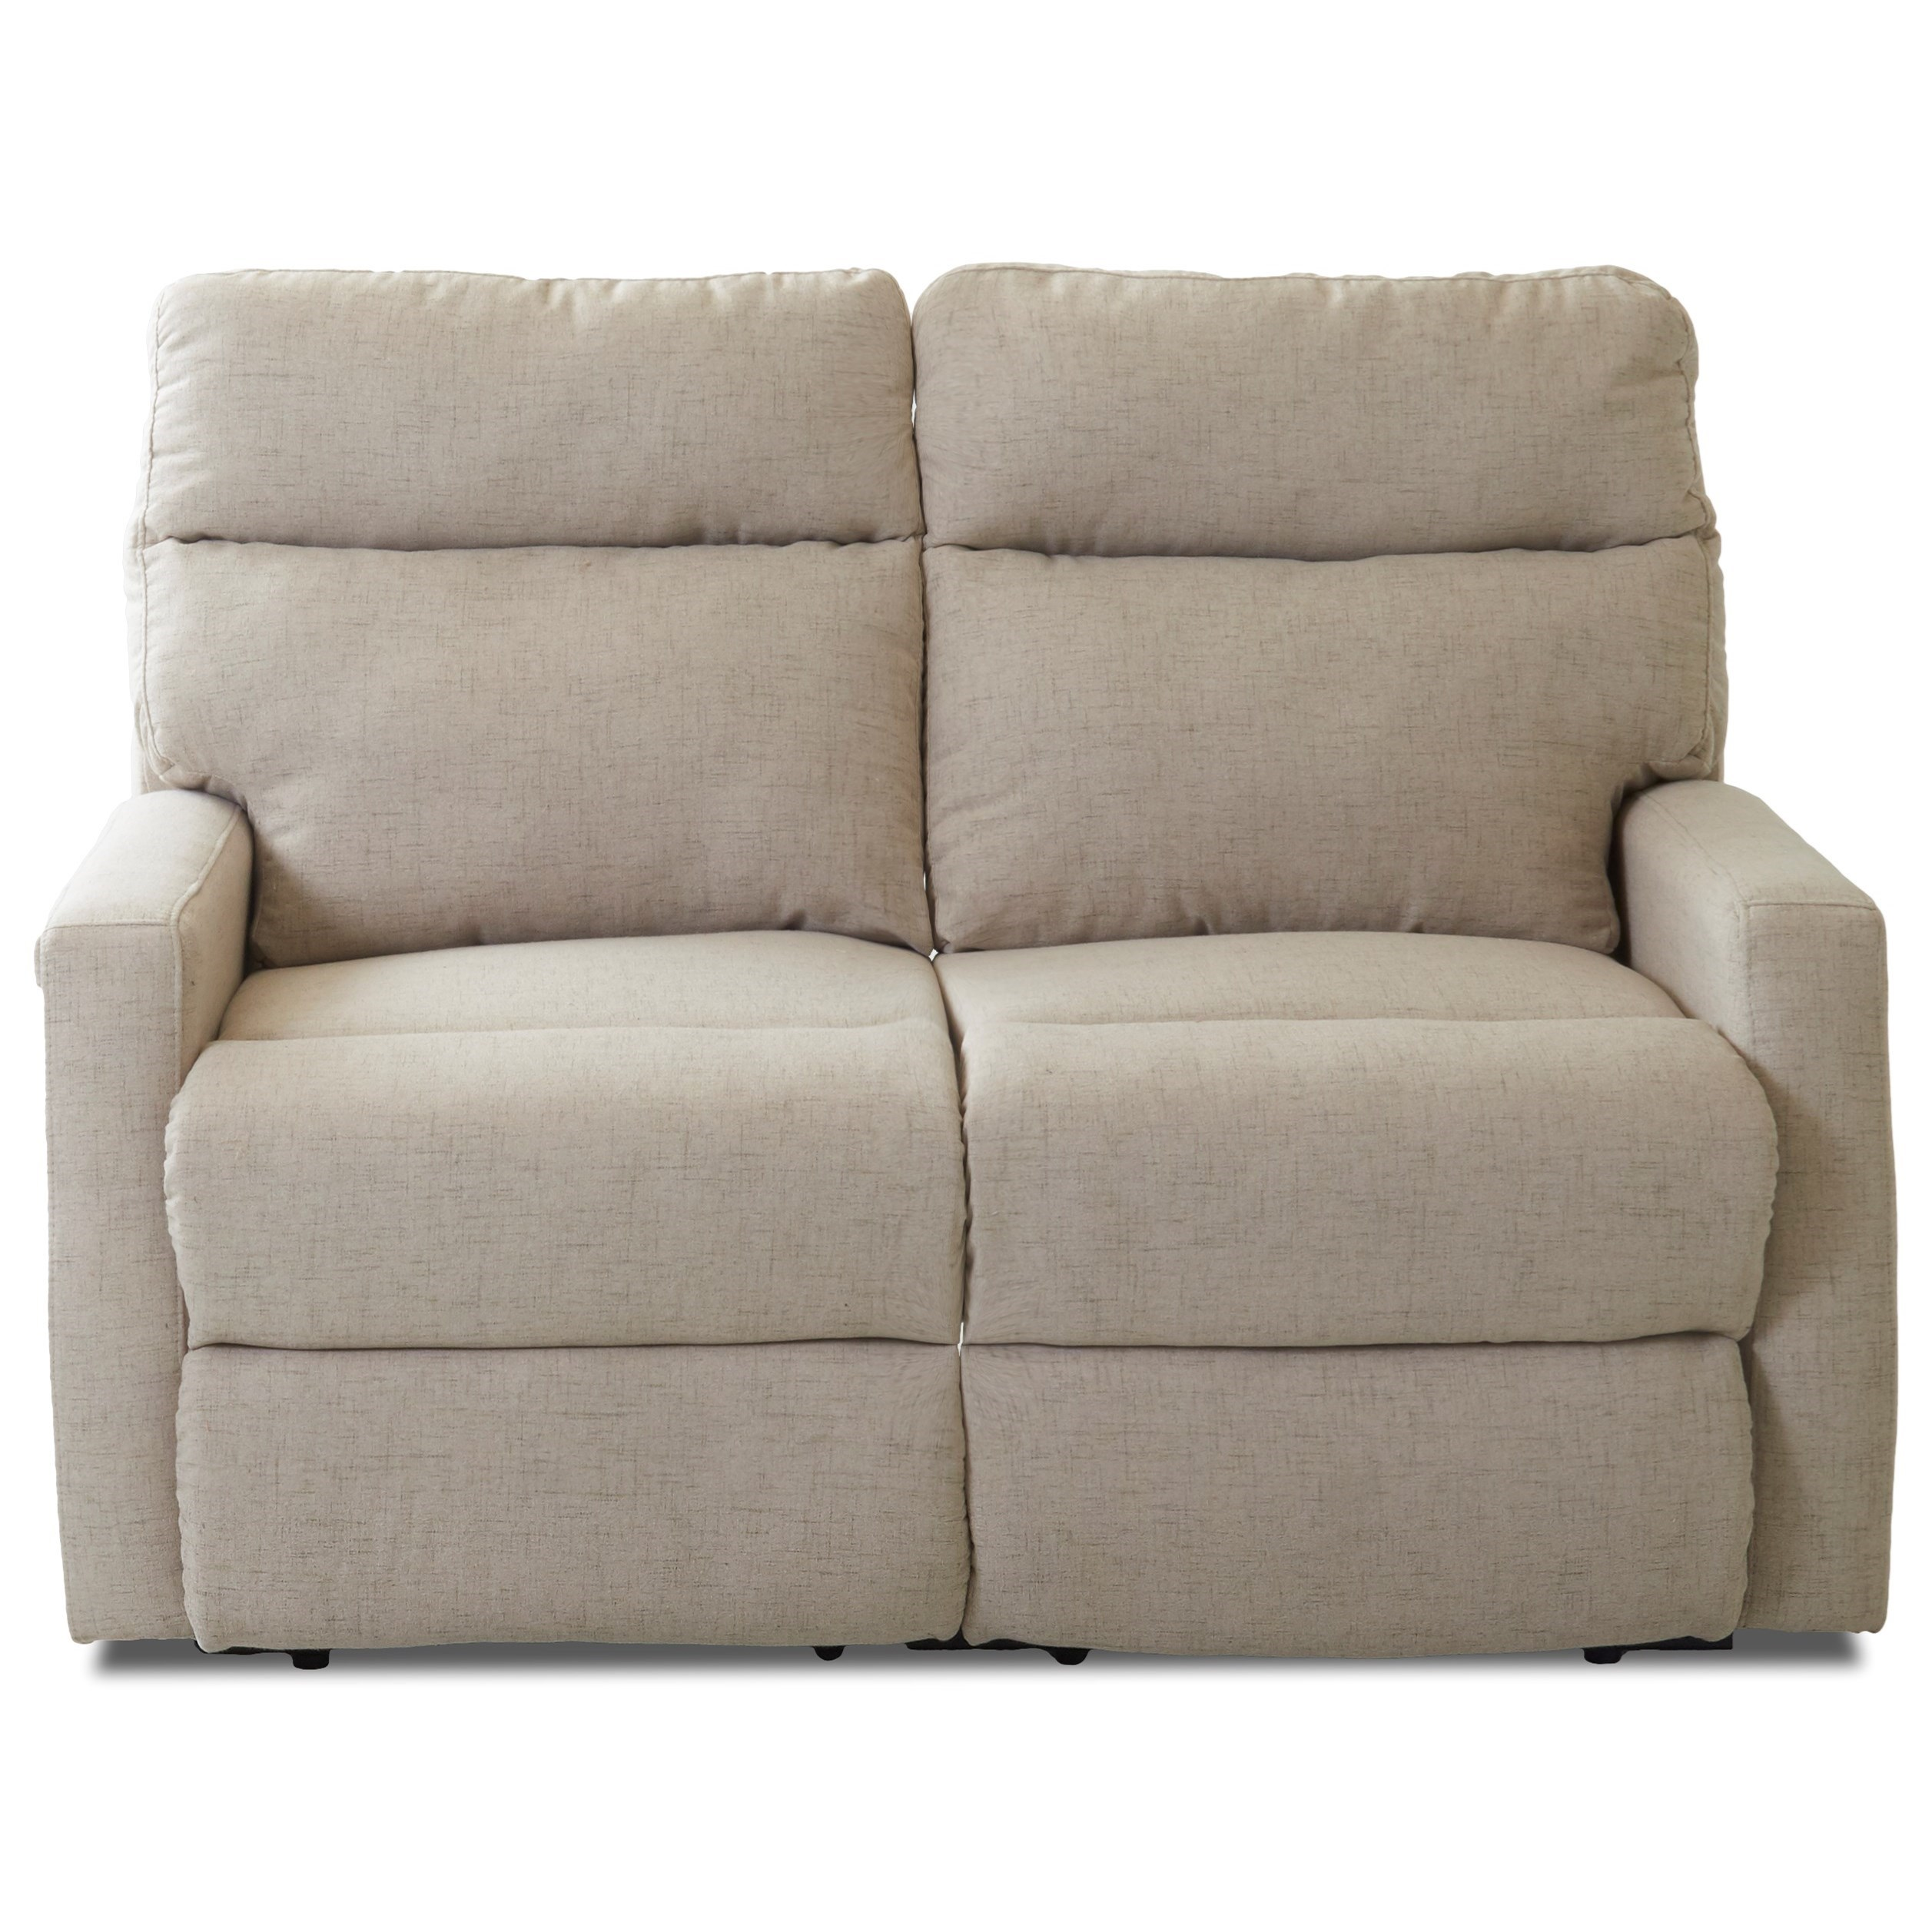 Reclining Loveseat with Track Arms